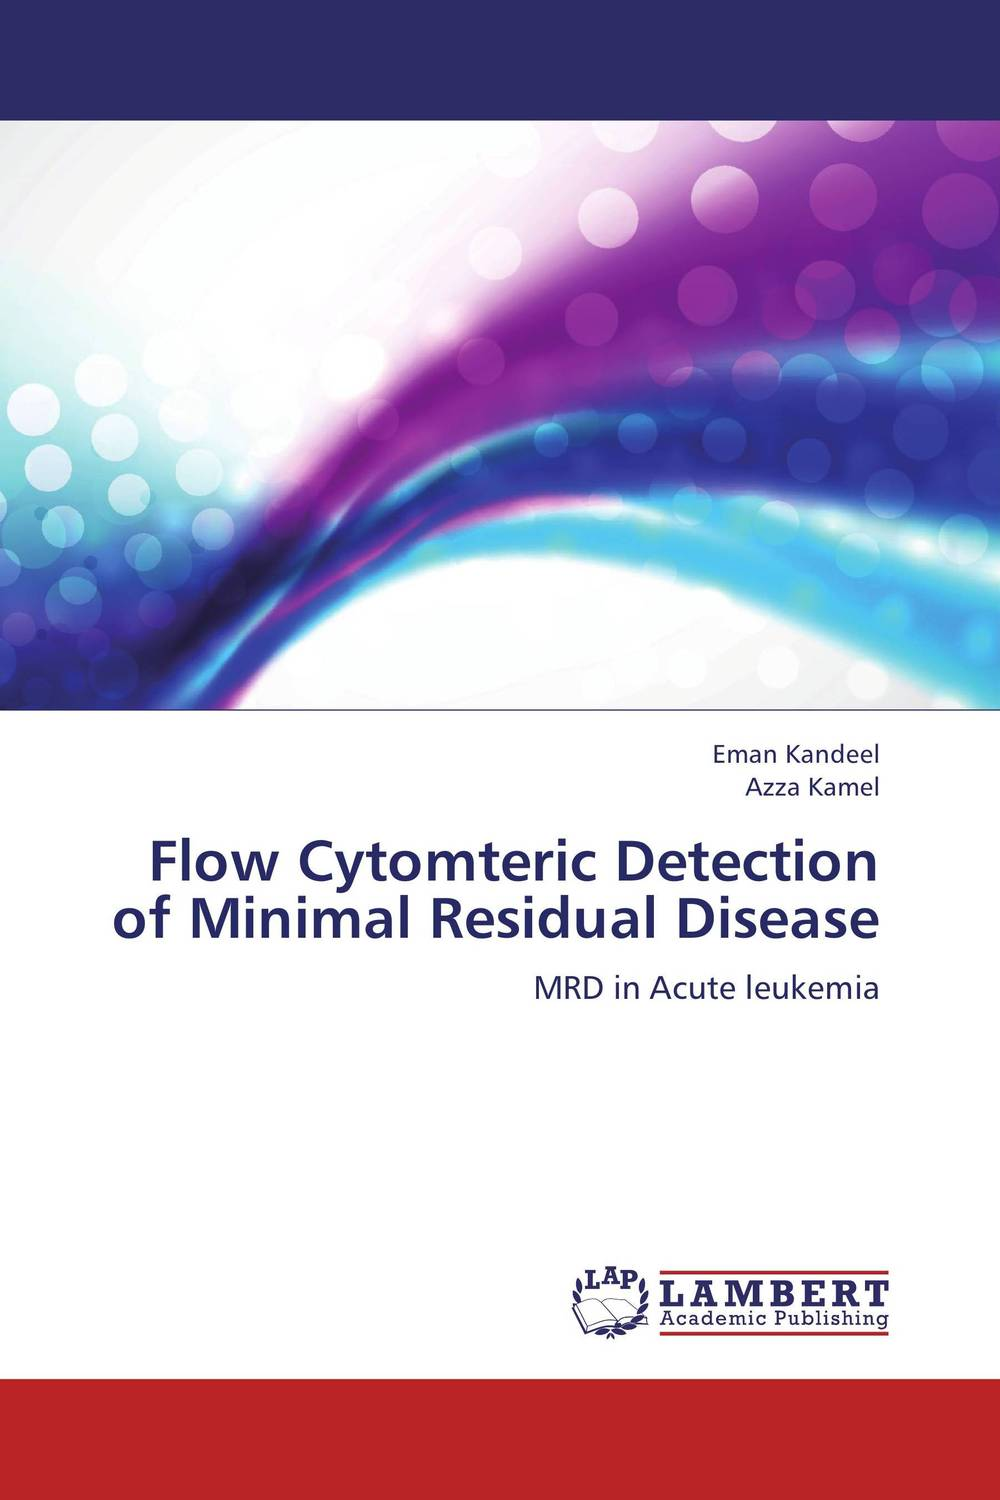 Flow Cytomteric Detection of Minimal Residual Disease high quantity medicine detection type blood and marrow test slides